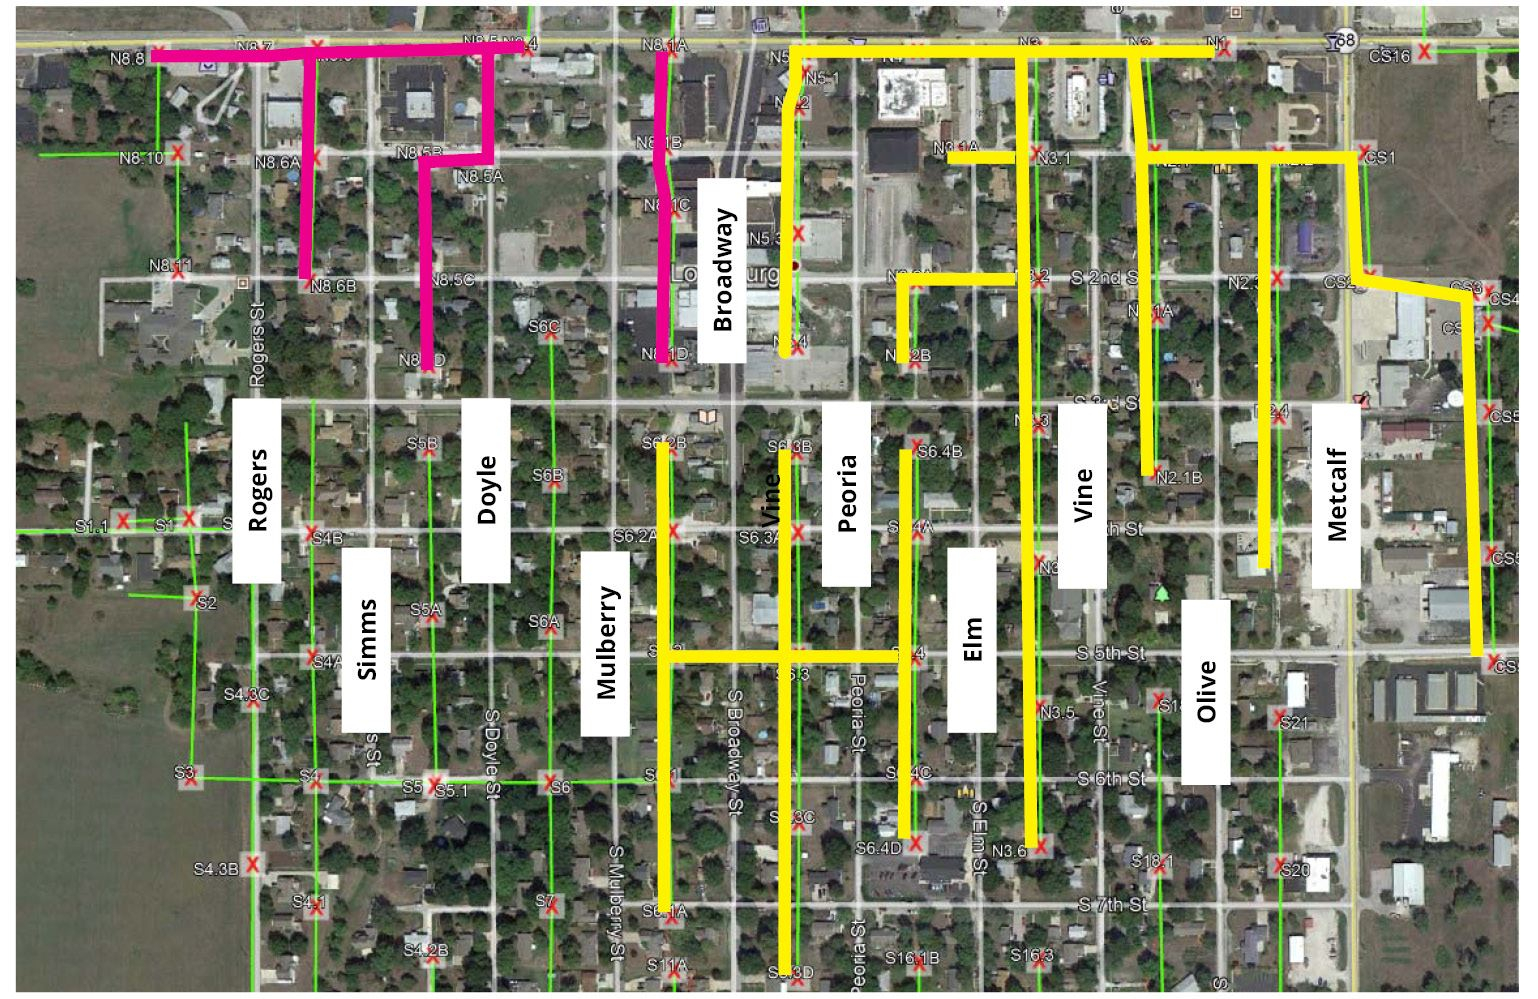 City of Louisburg 2019 sewer maintenance map.